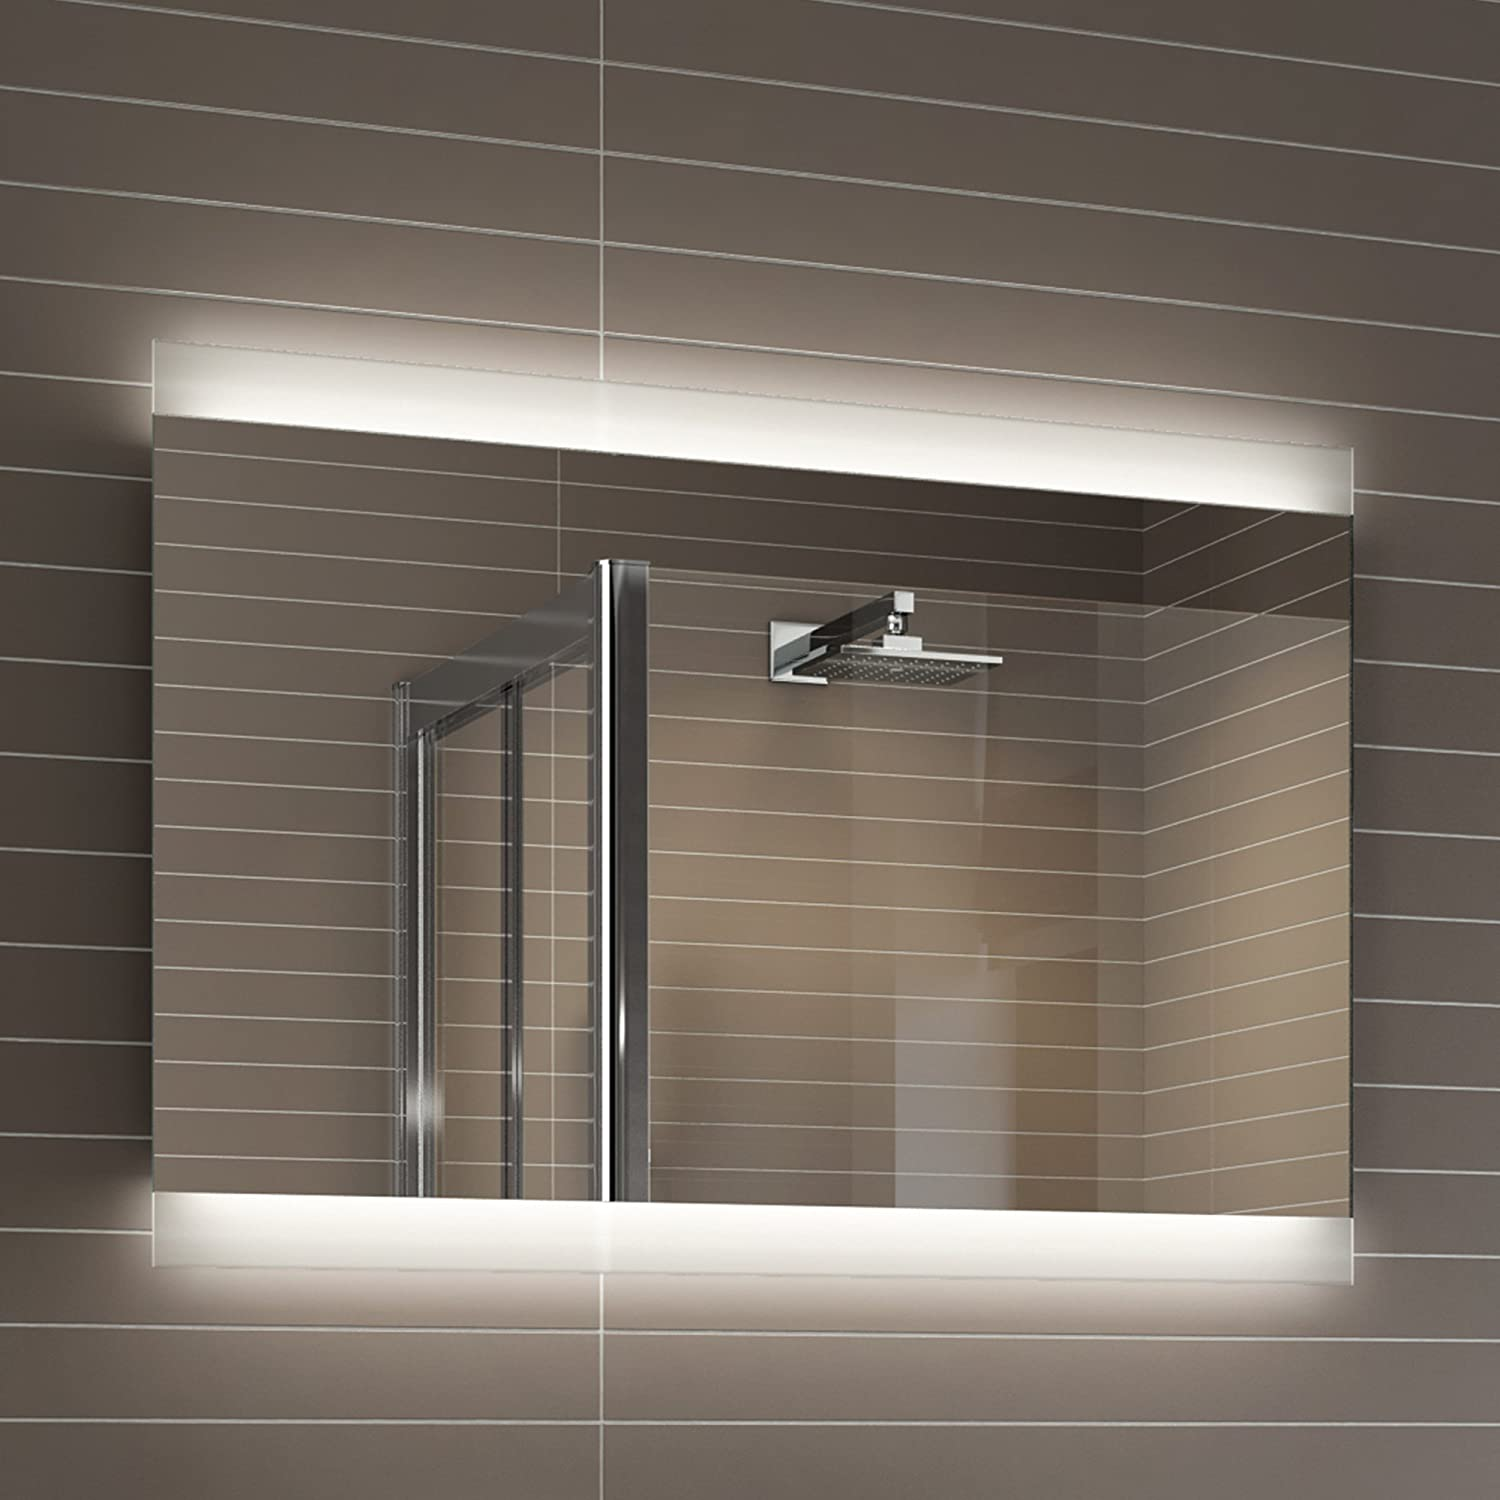 Bathroom mirrors with led lights - 700 X 500 Mm Designer Illuminated Led Bathroom Mirror Light Sensor Demister Ml5001